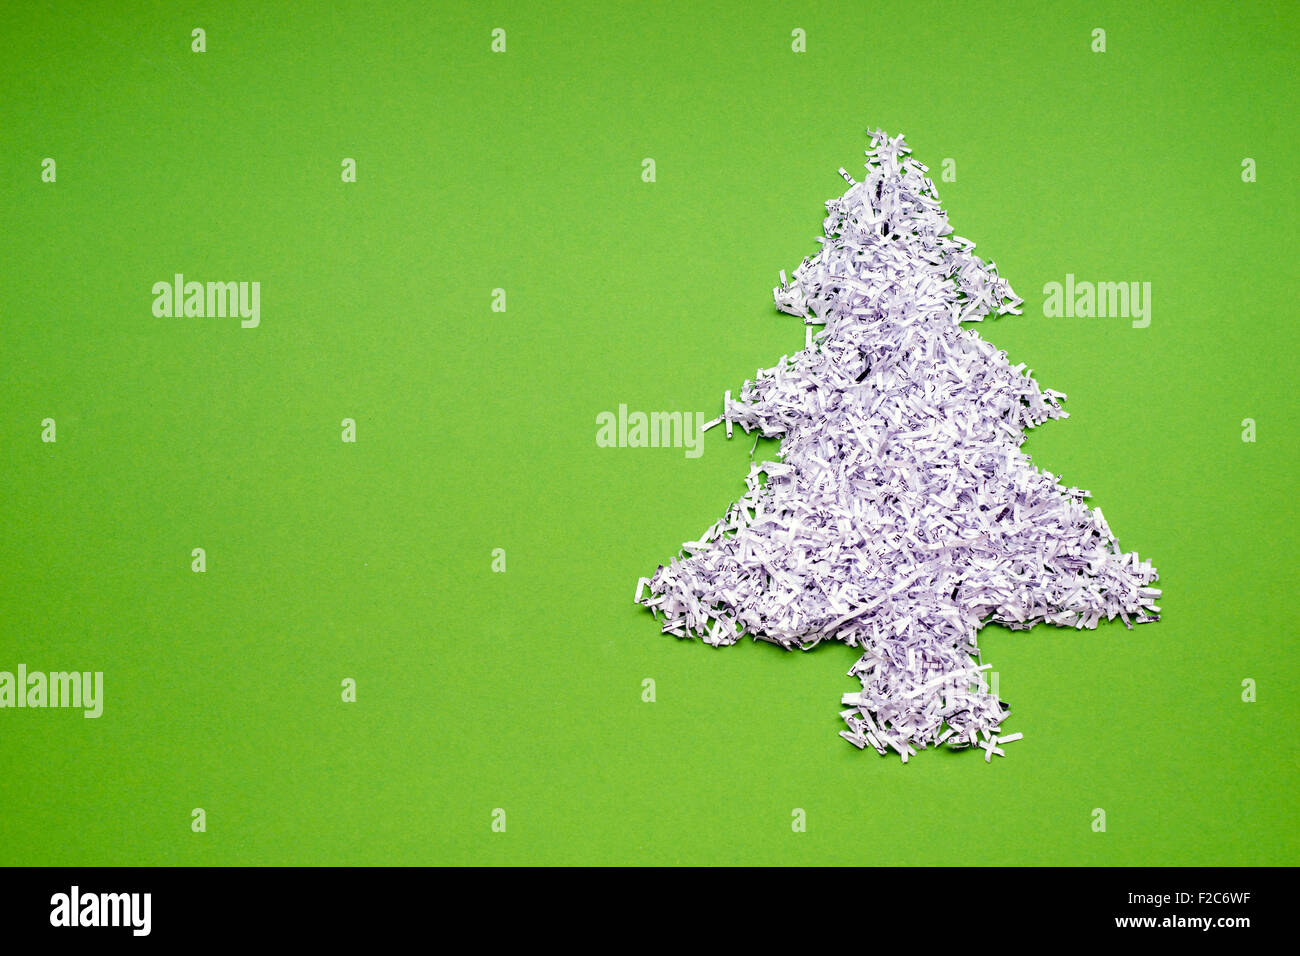 Ecology Recycle Concept With Fir Tree Symbol Made From Shredded